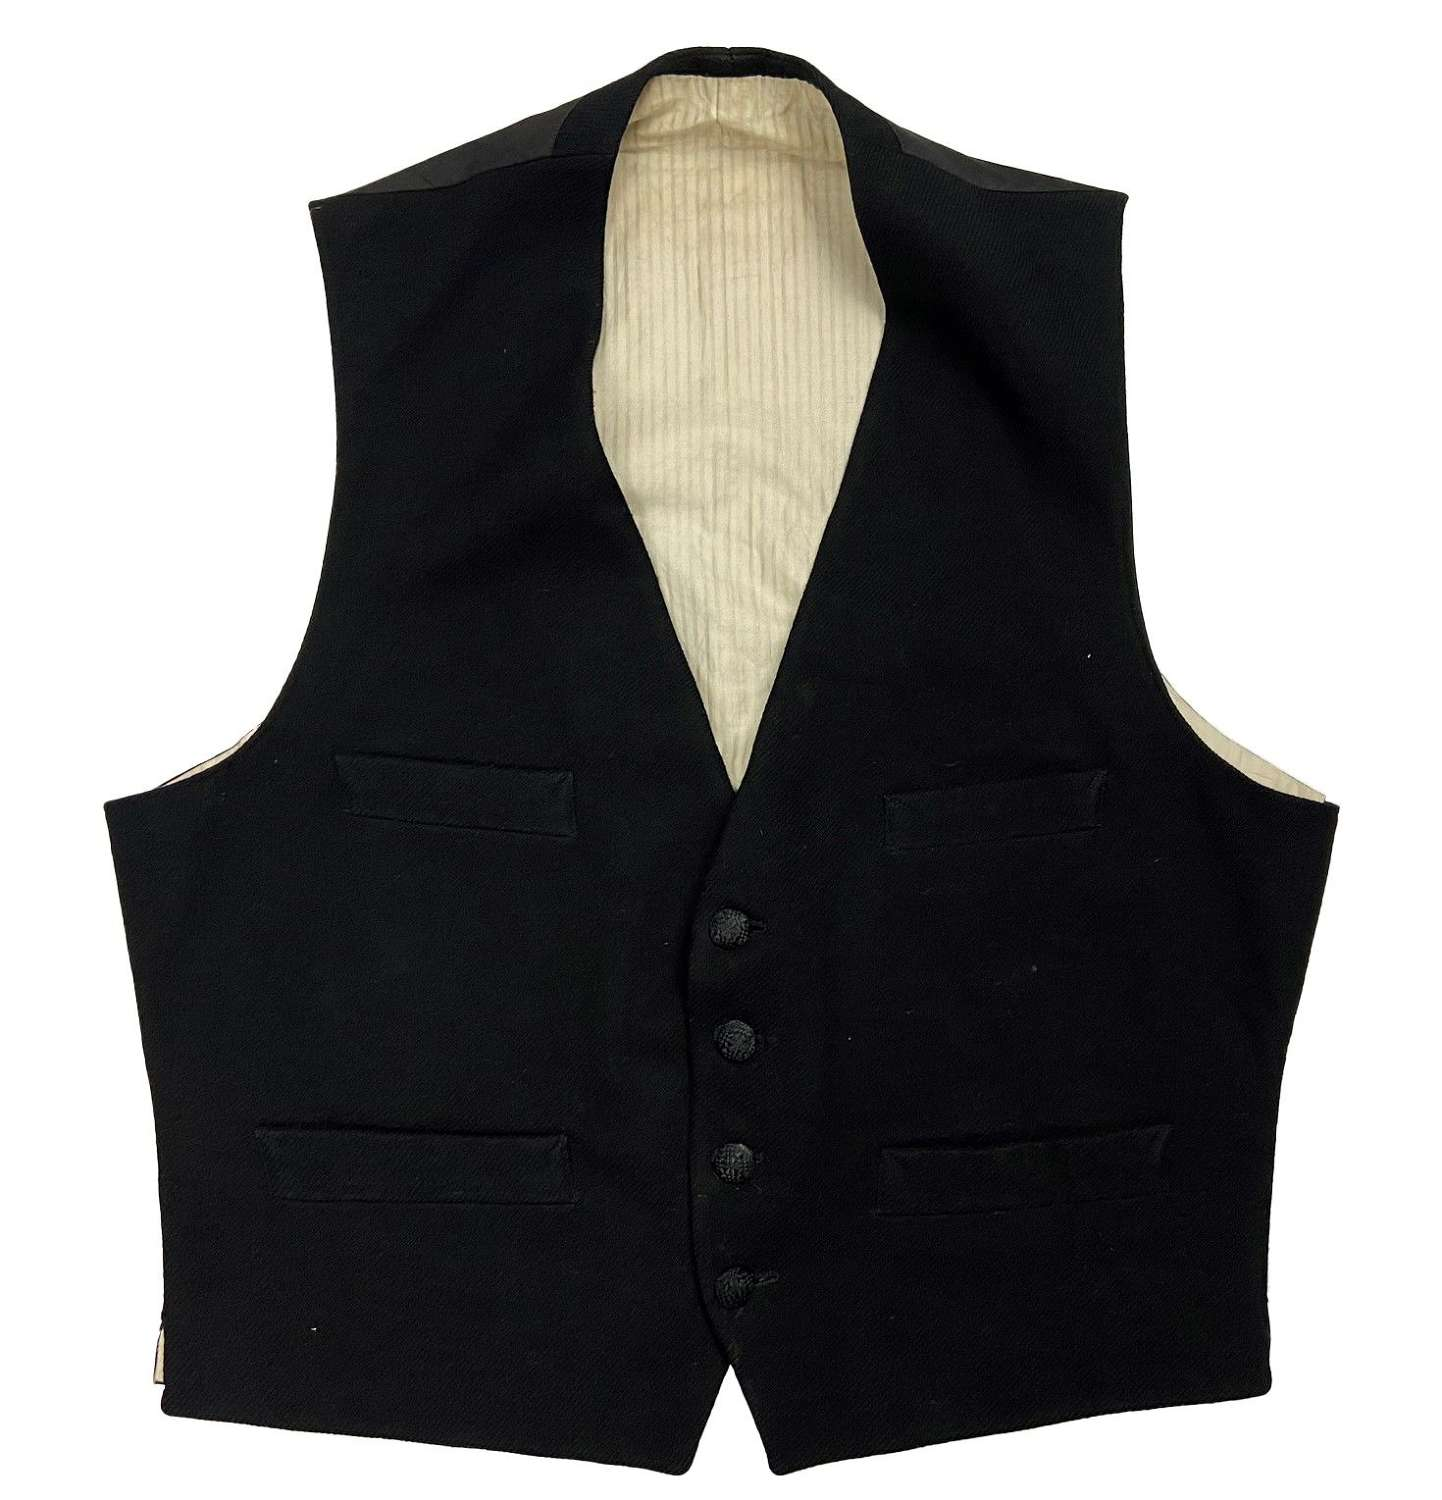 Original 1920s Men's Black Evening Waistcoat